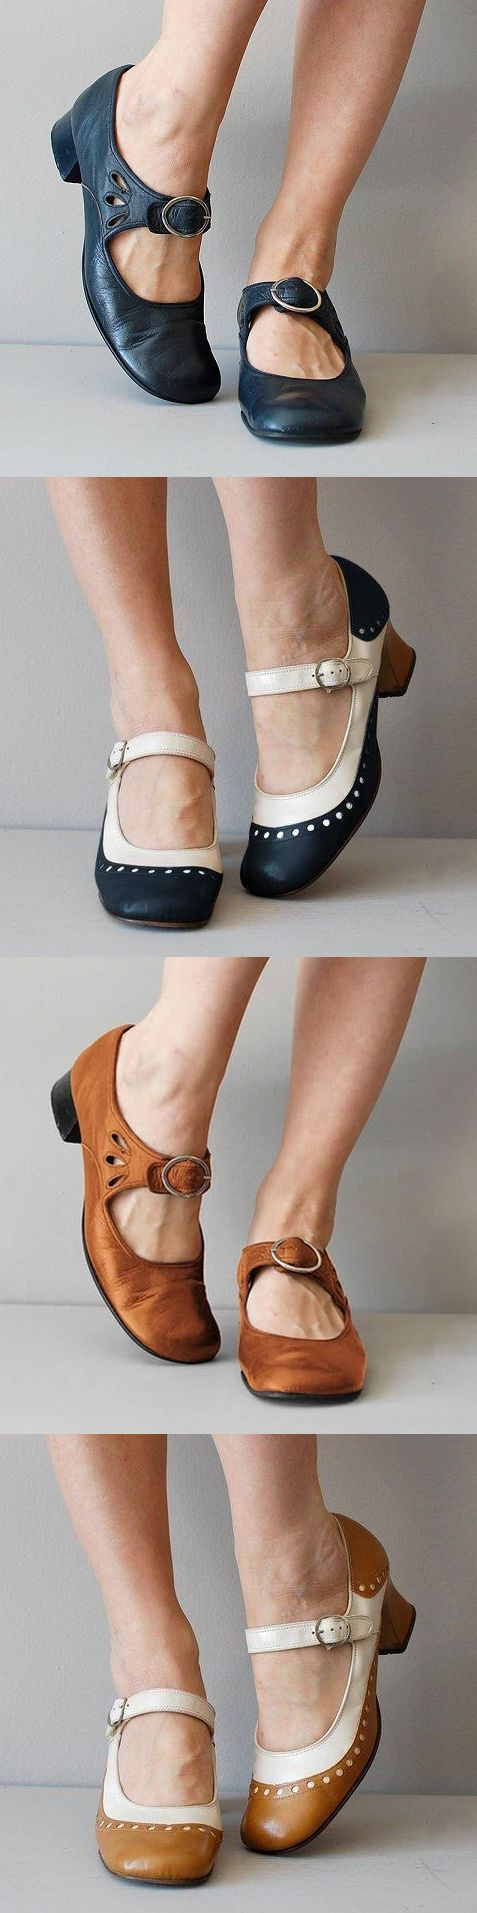 SHOP NOW>>70% OFF Comfy Vintage Sandals Slippers.Must Have It!